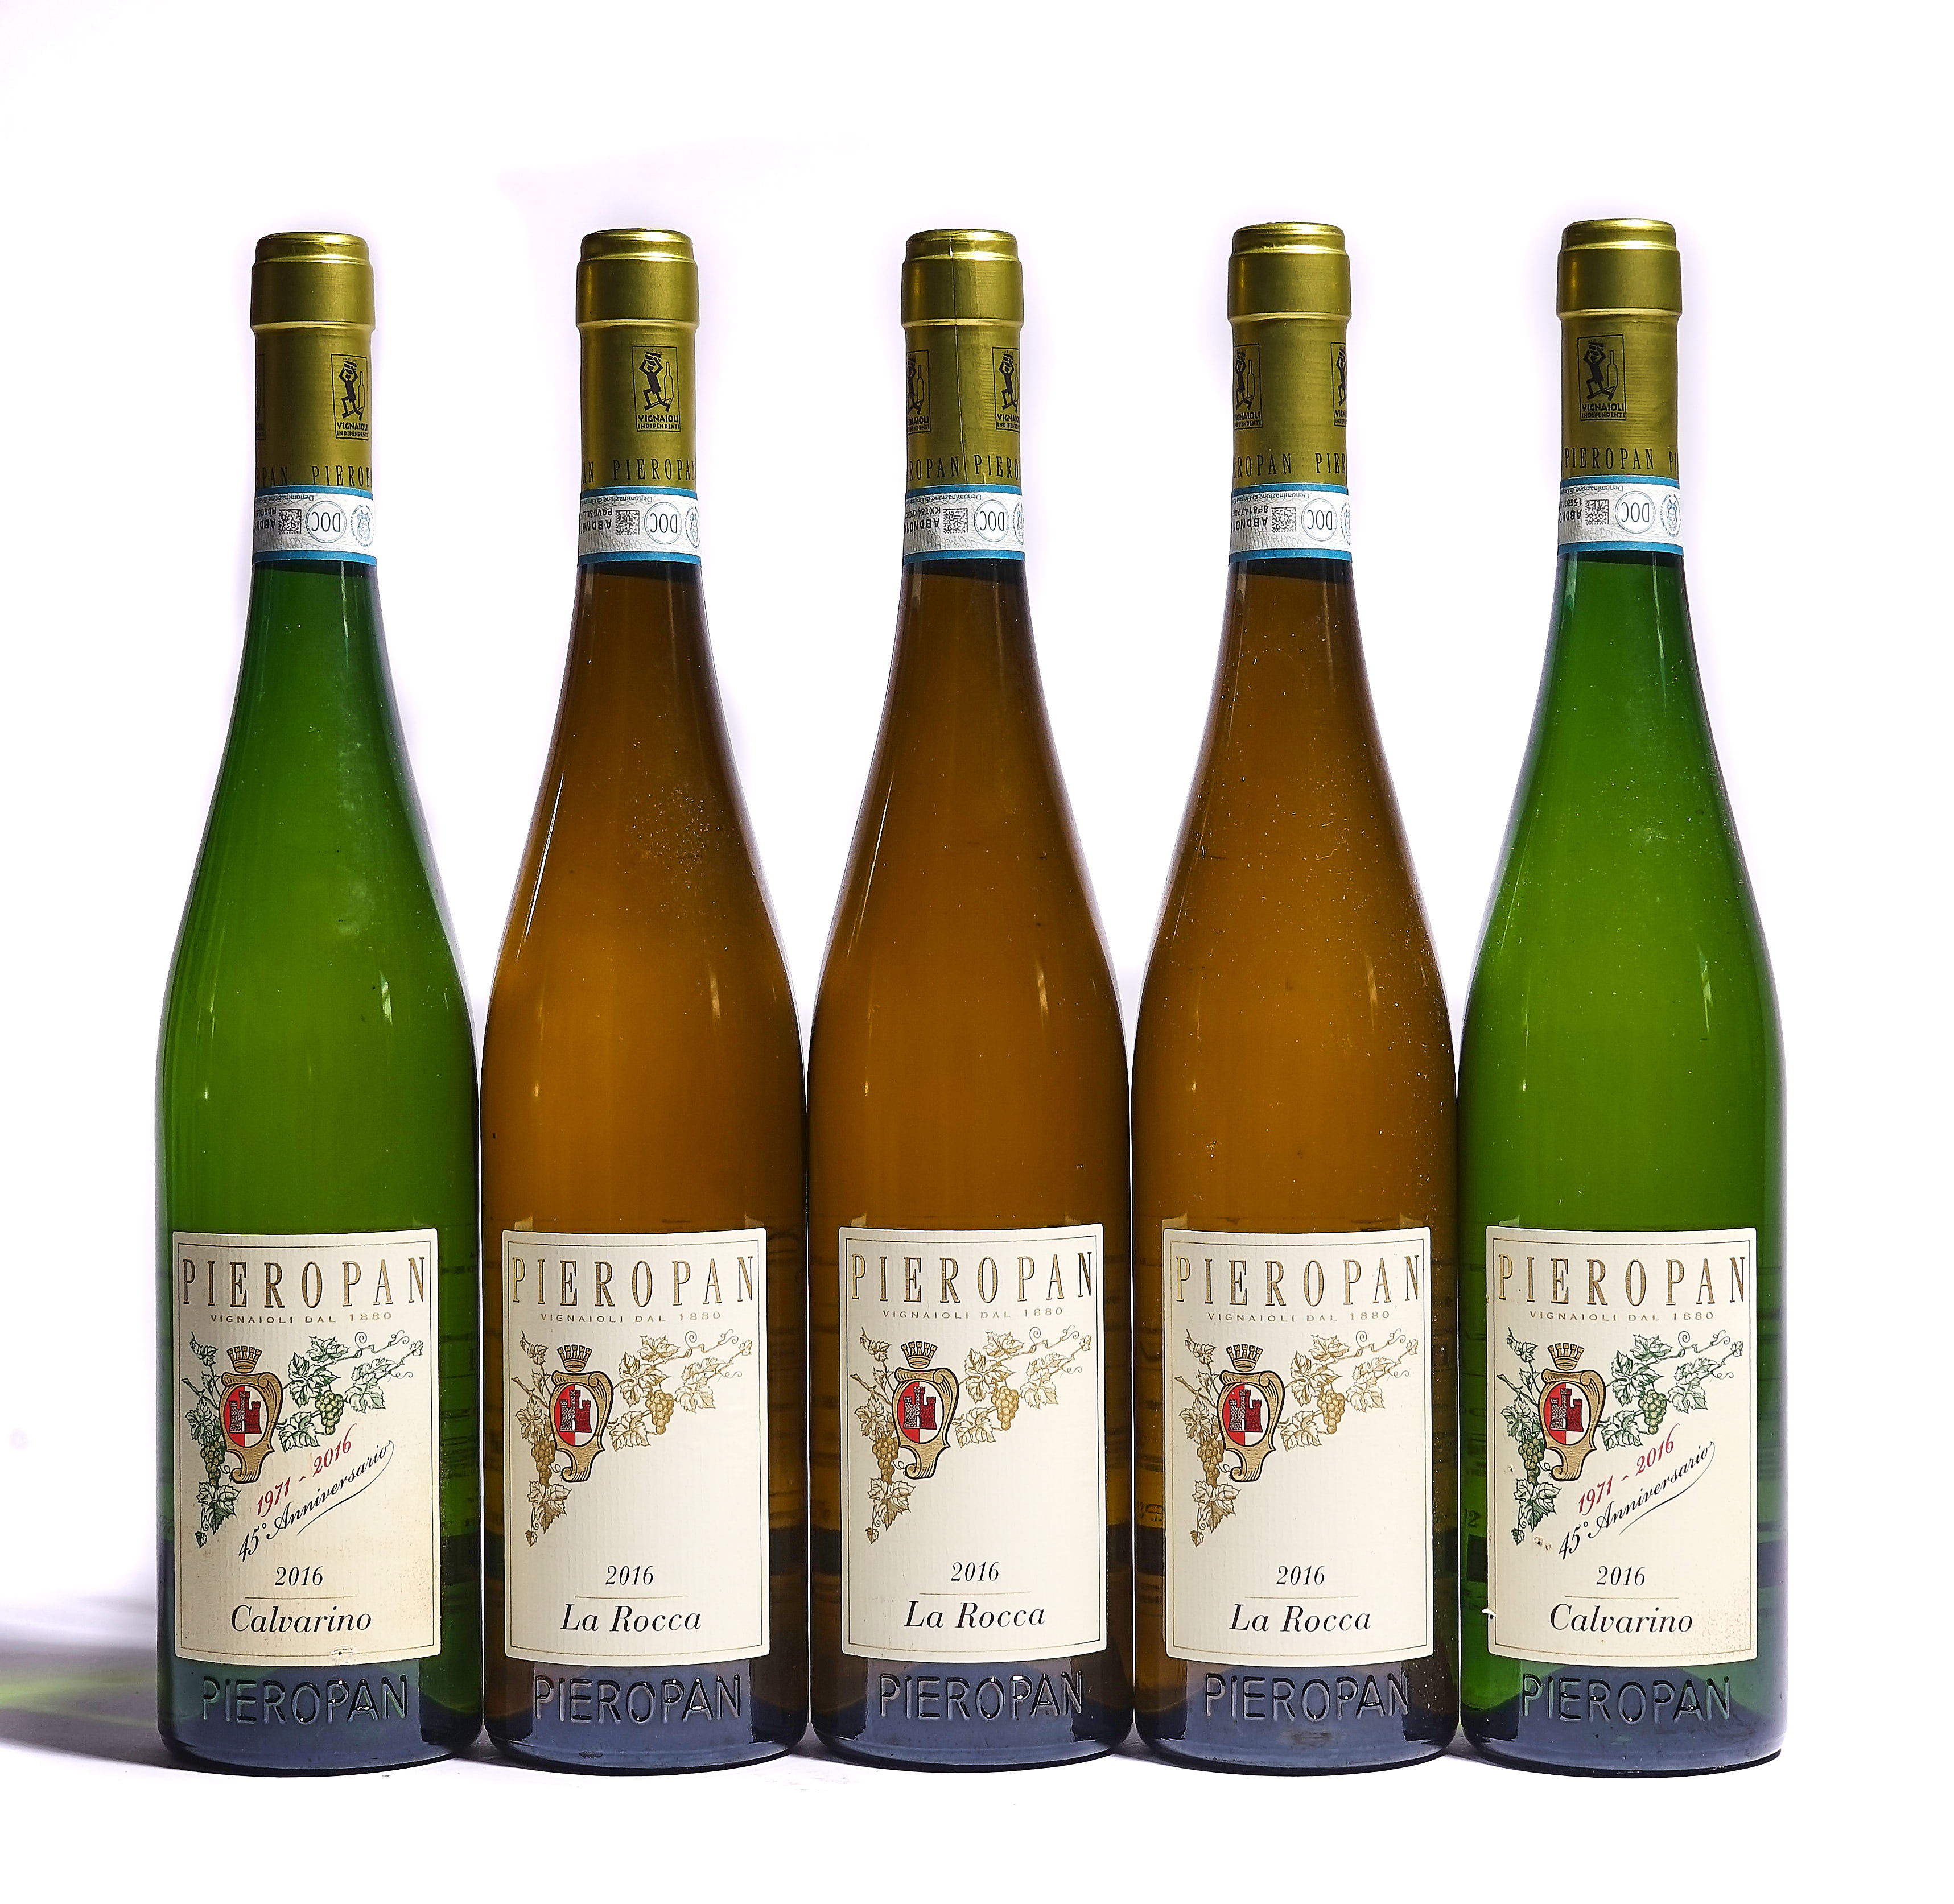 12 BOTTLES ITALIAN AND GERMAN WHITE AND FRENCH RED WINE - Image 2 of 4